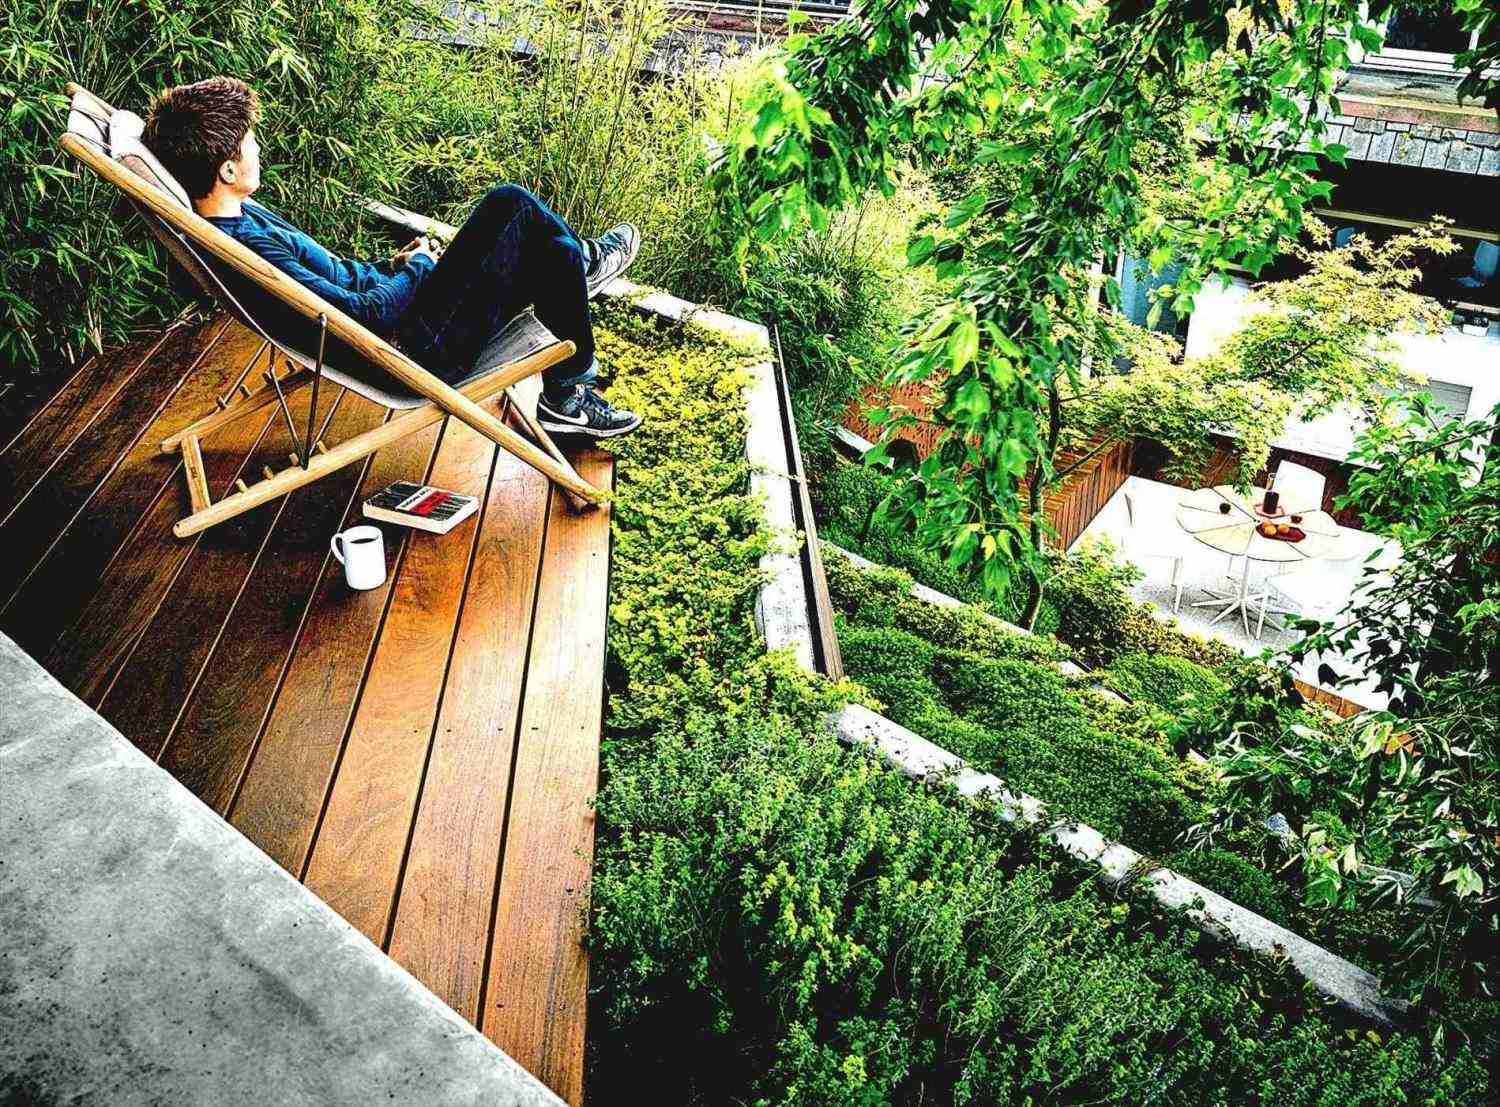 Landscaping Ideas For Downward Sloping Backyard Front Yard with 14 Genius Ways How to Craft Landscaping Ideas For Downward Sloping Backyard